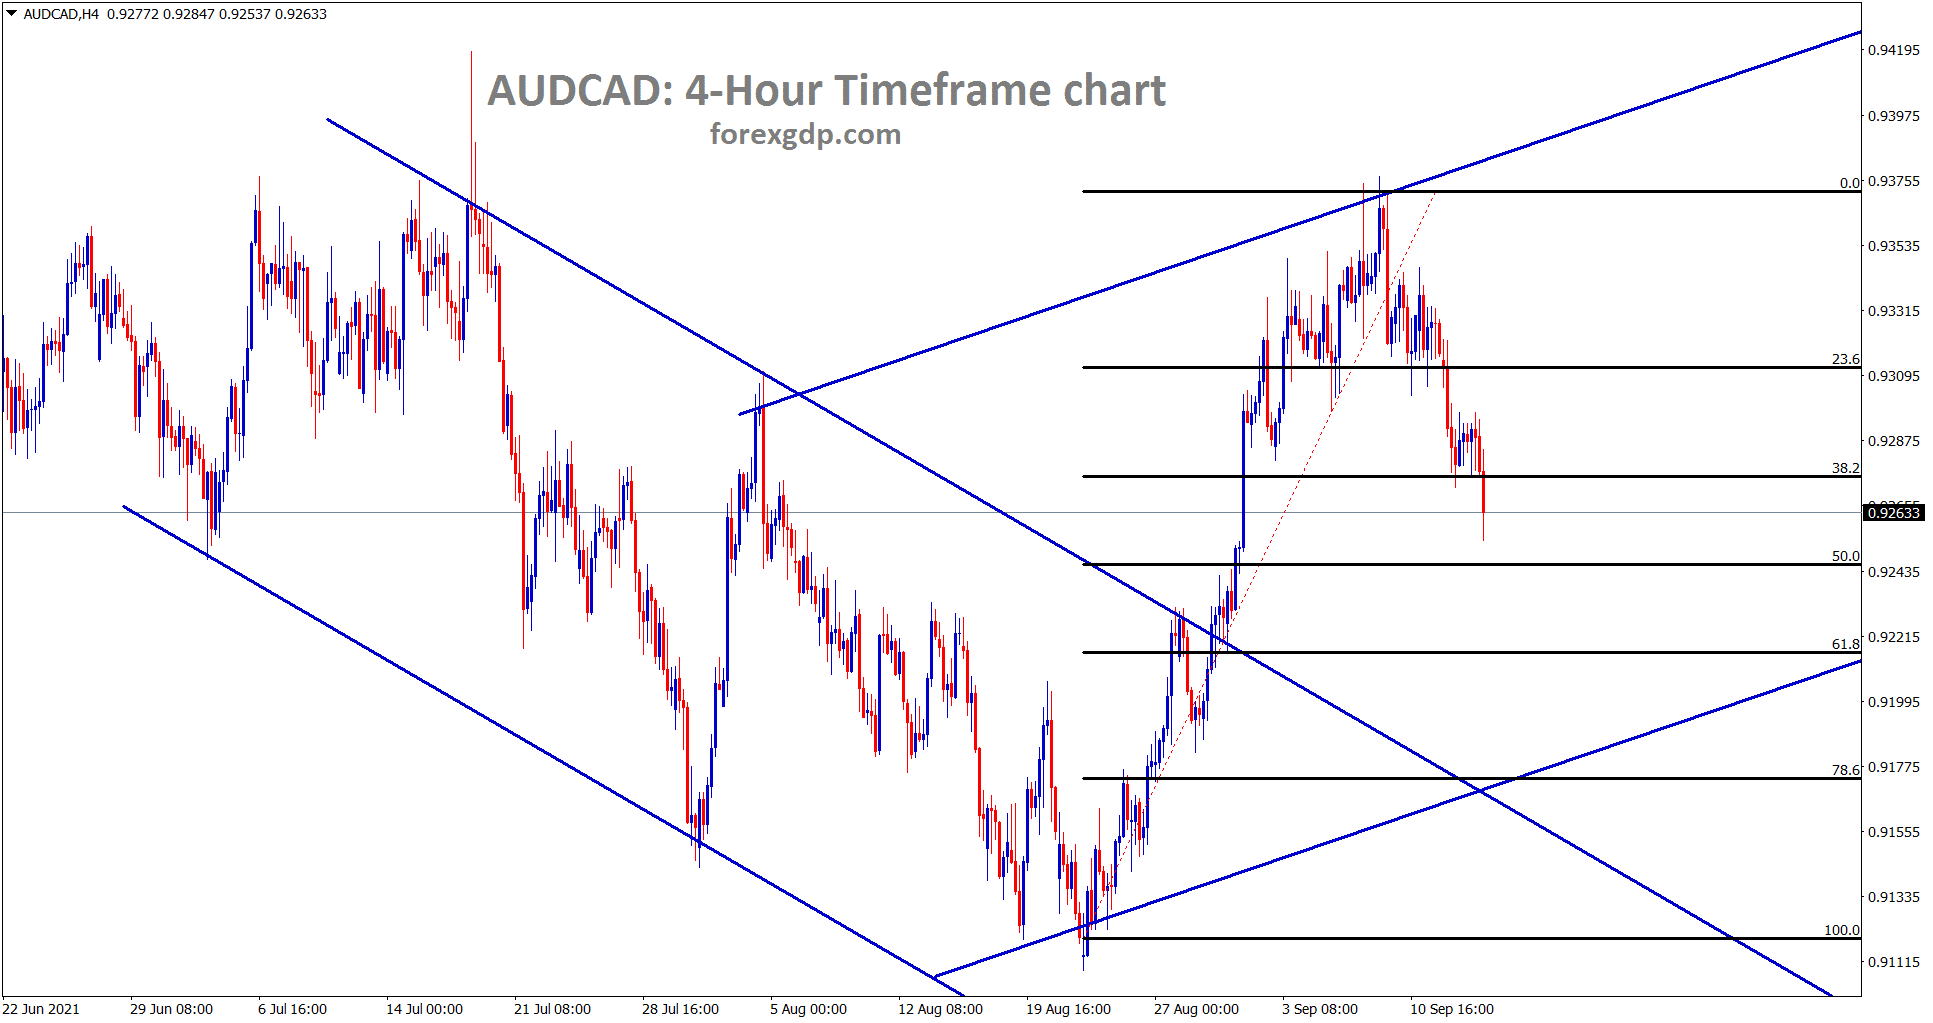 AUDCAD is making a correction from the major resistance now it has retraced nearly 40